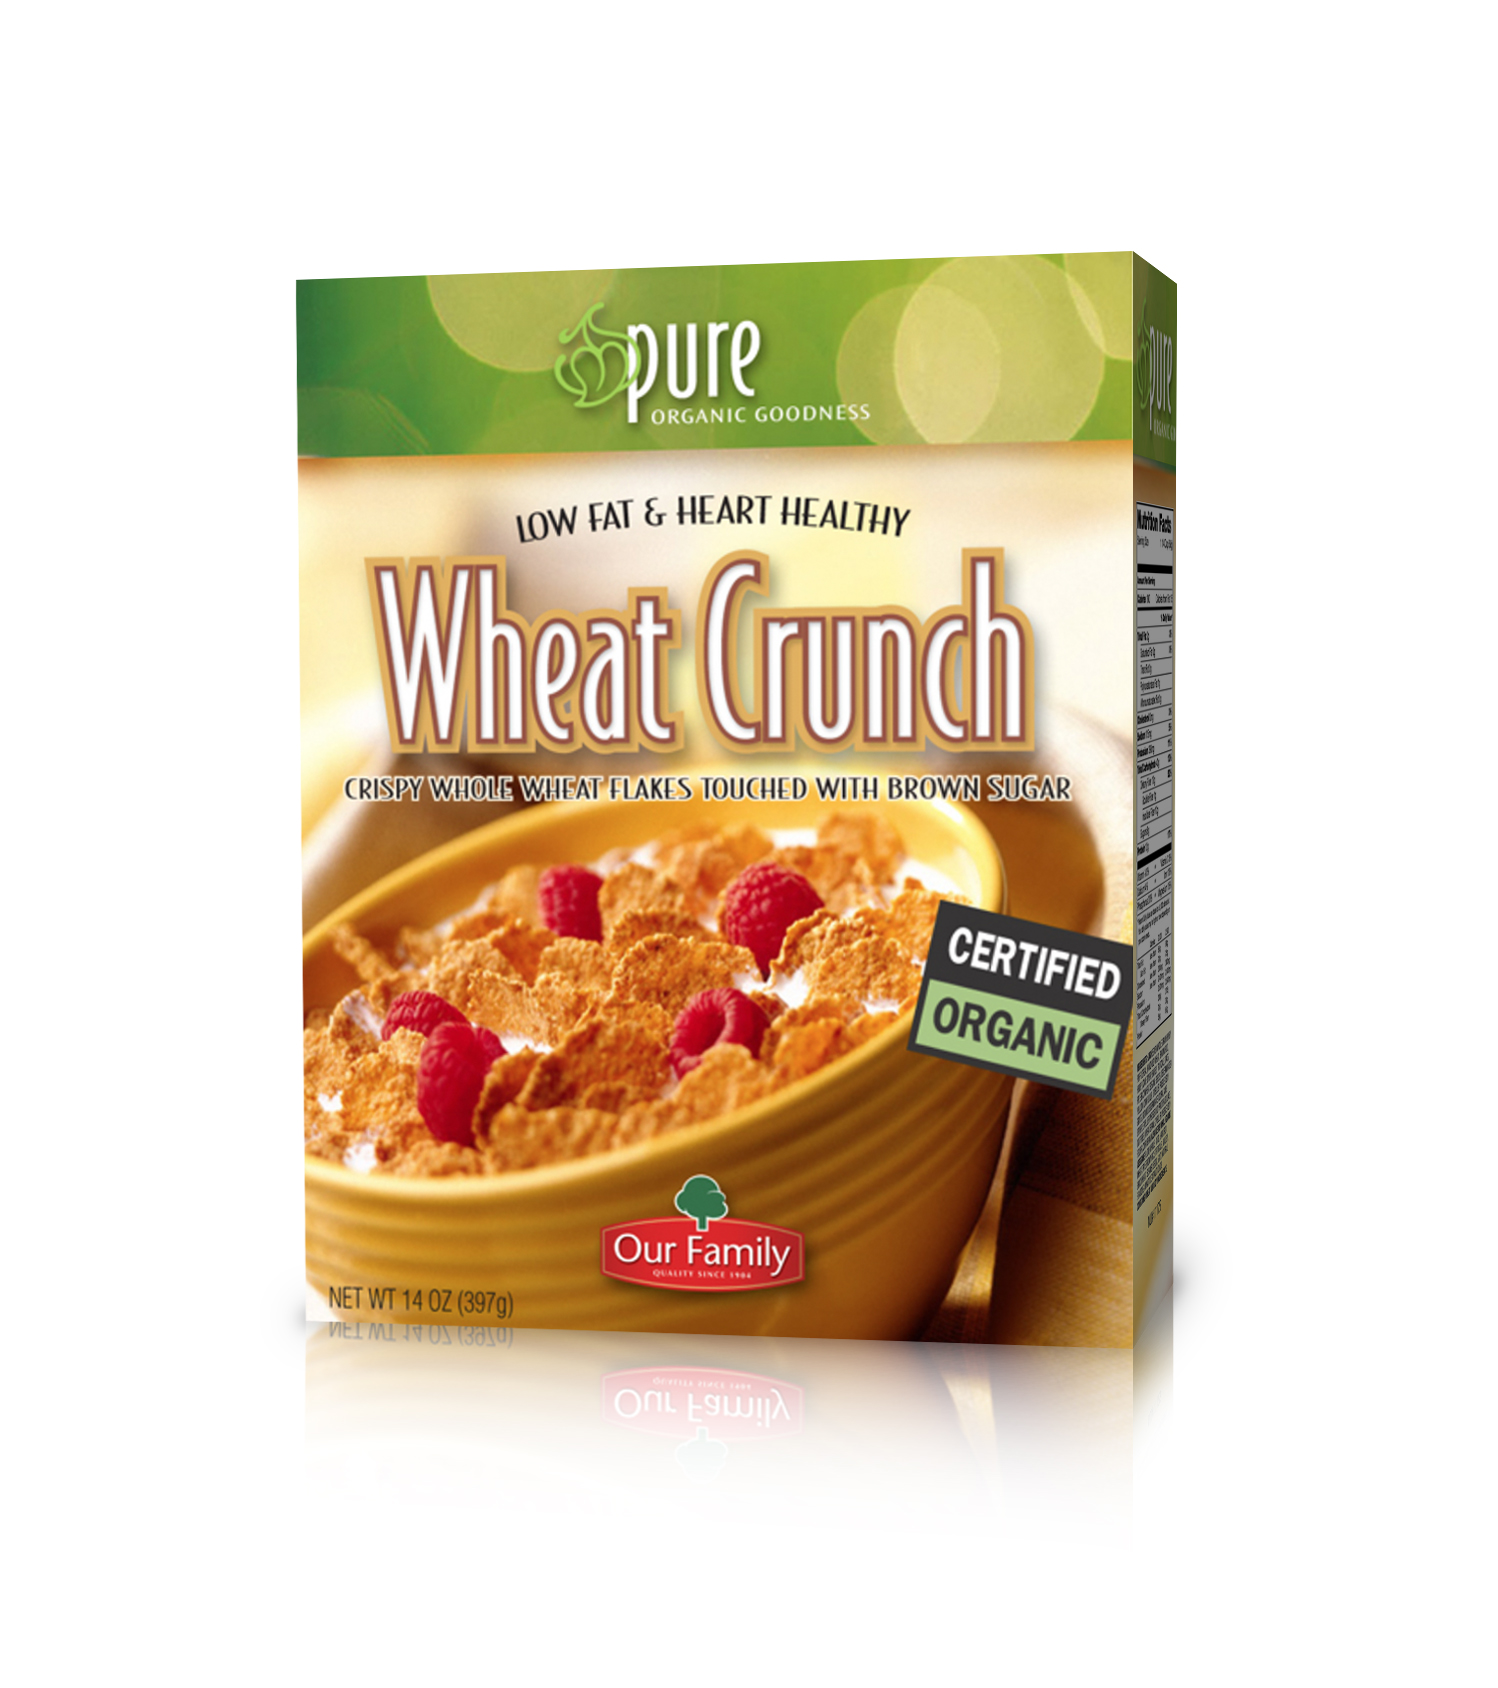 Whoville Our Family Wheat Crunch Package.jpg